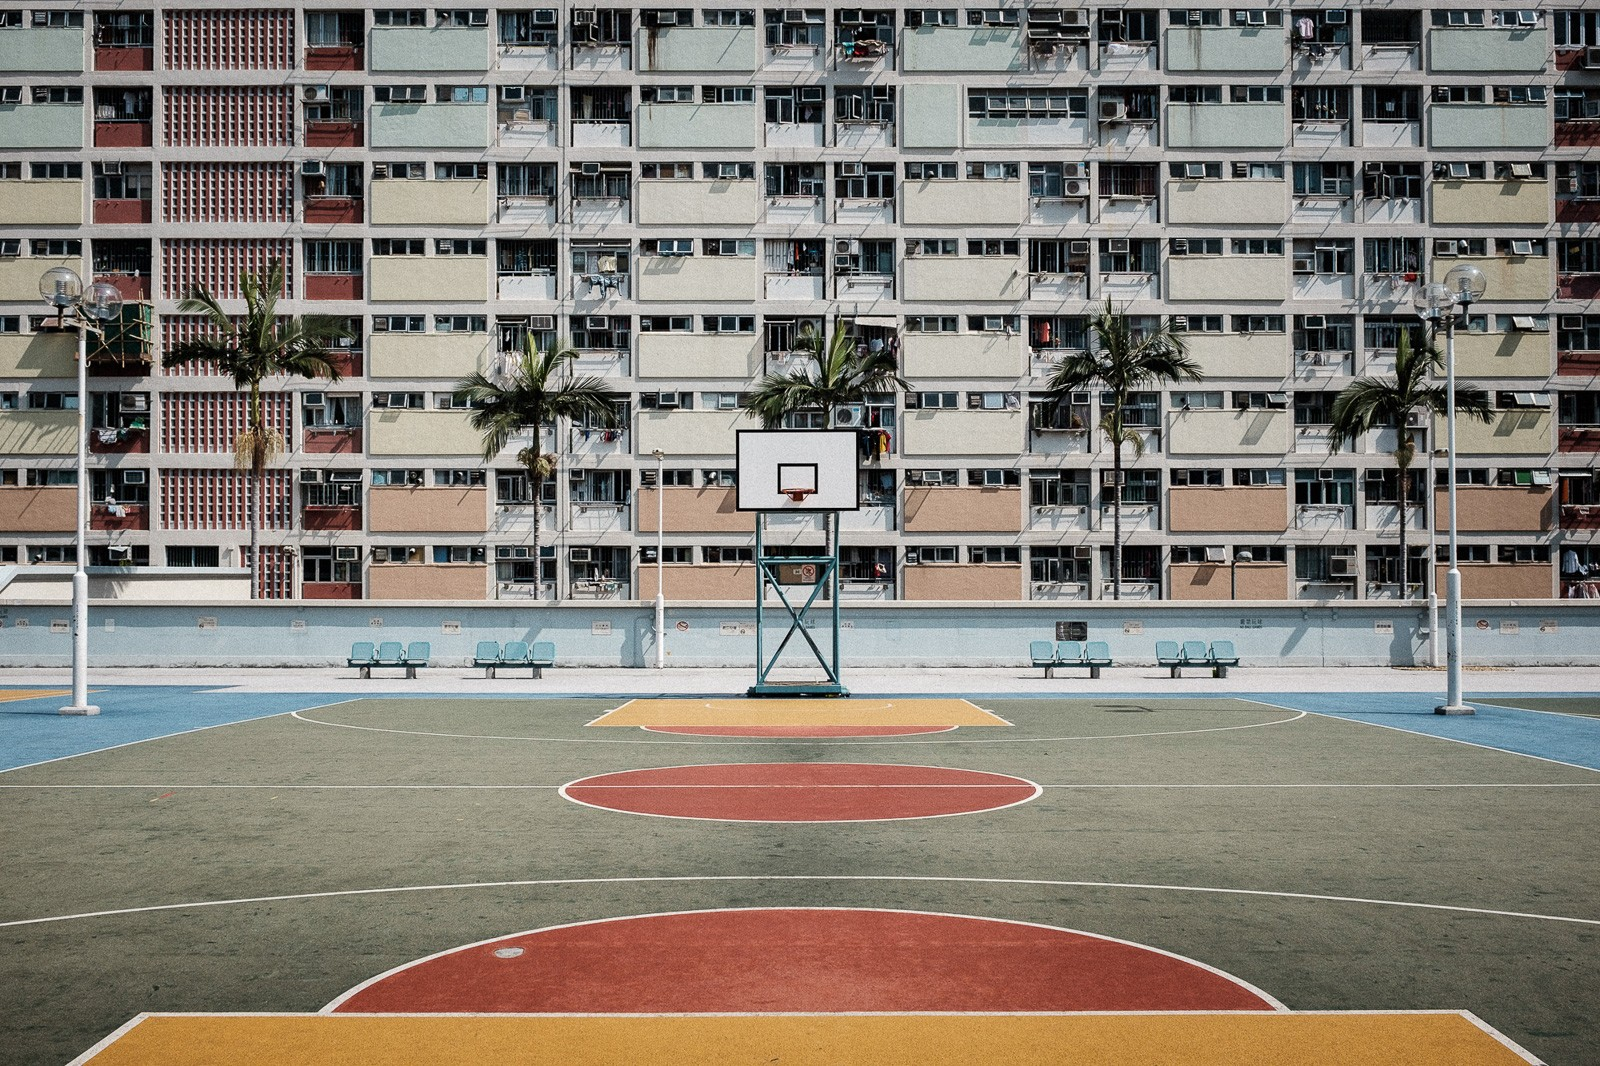 colorful basketball court in hong kong choi hung estate